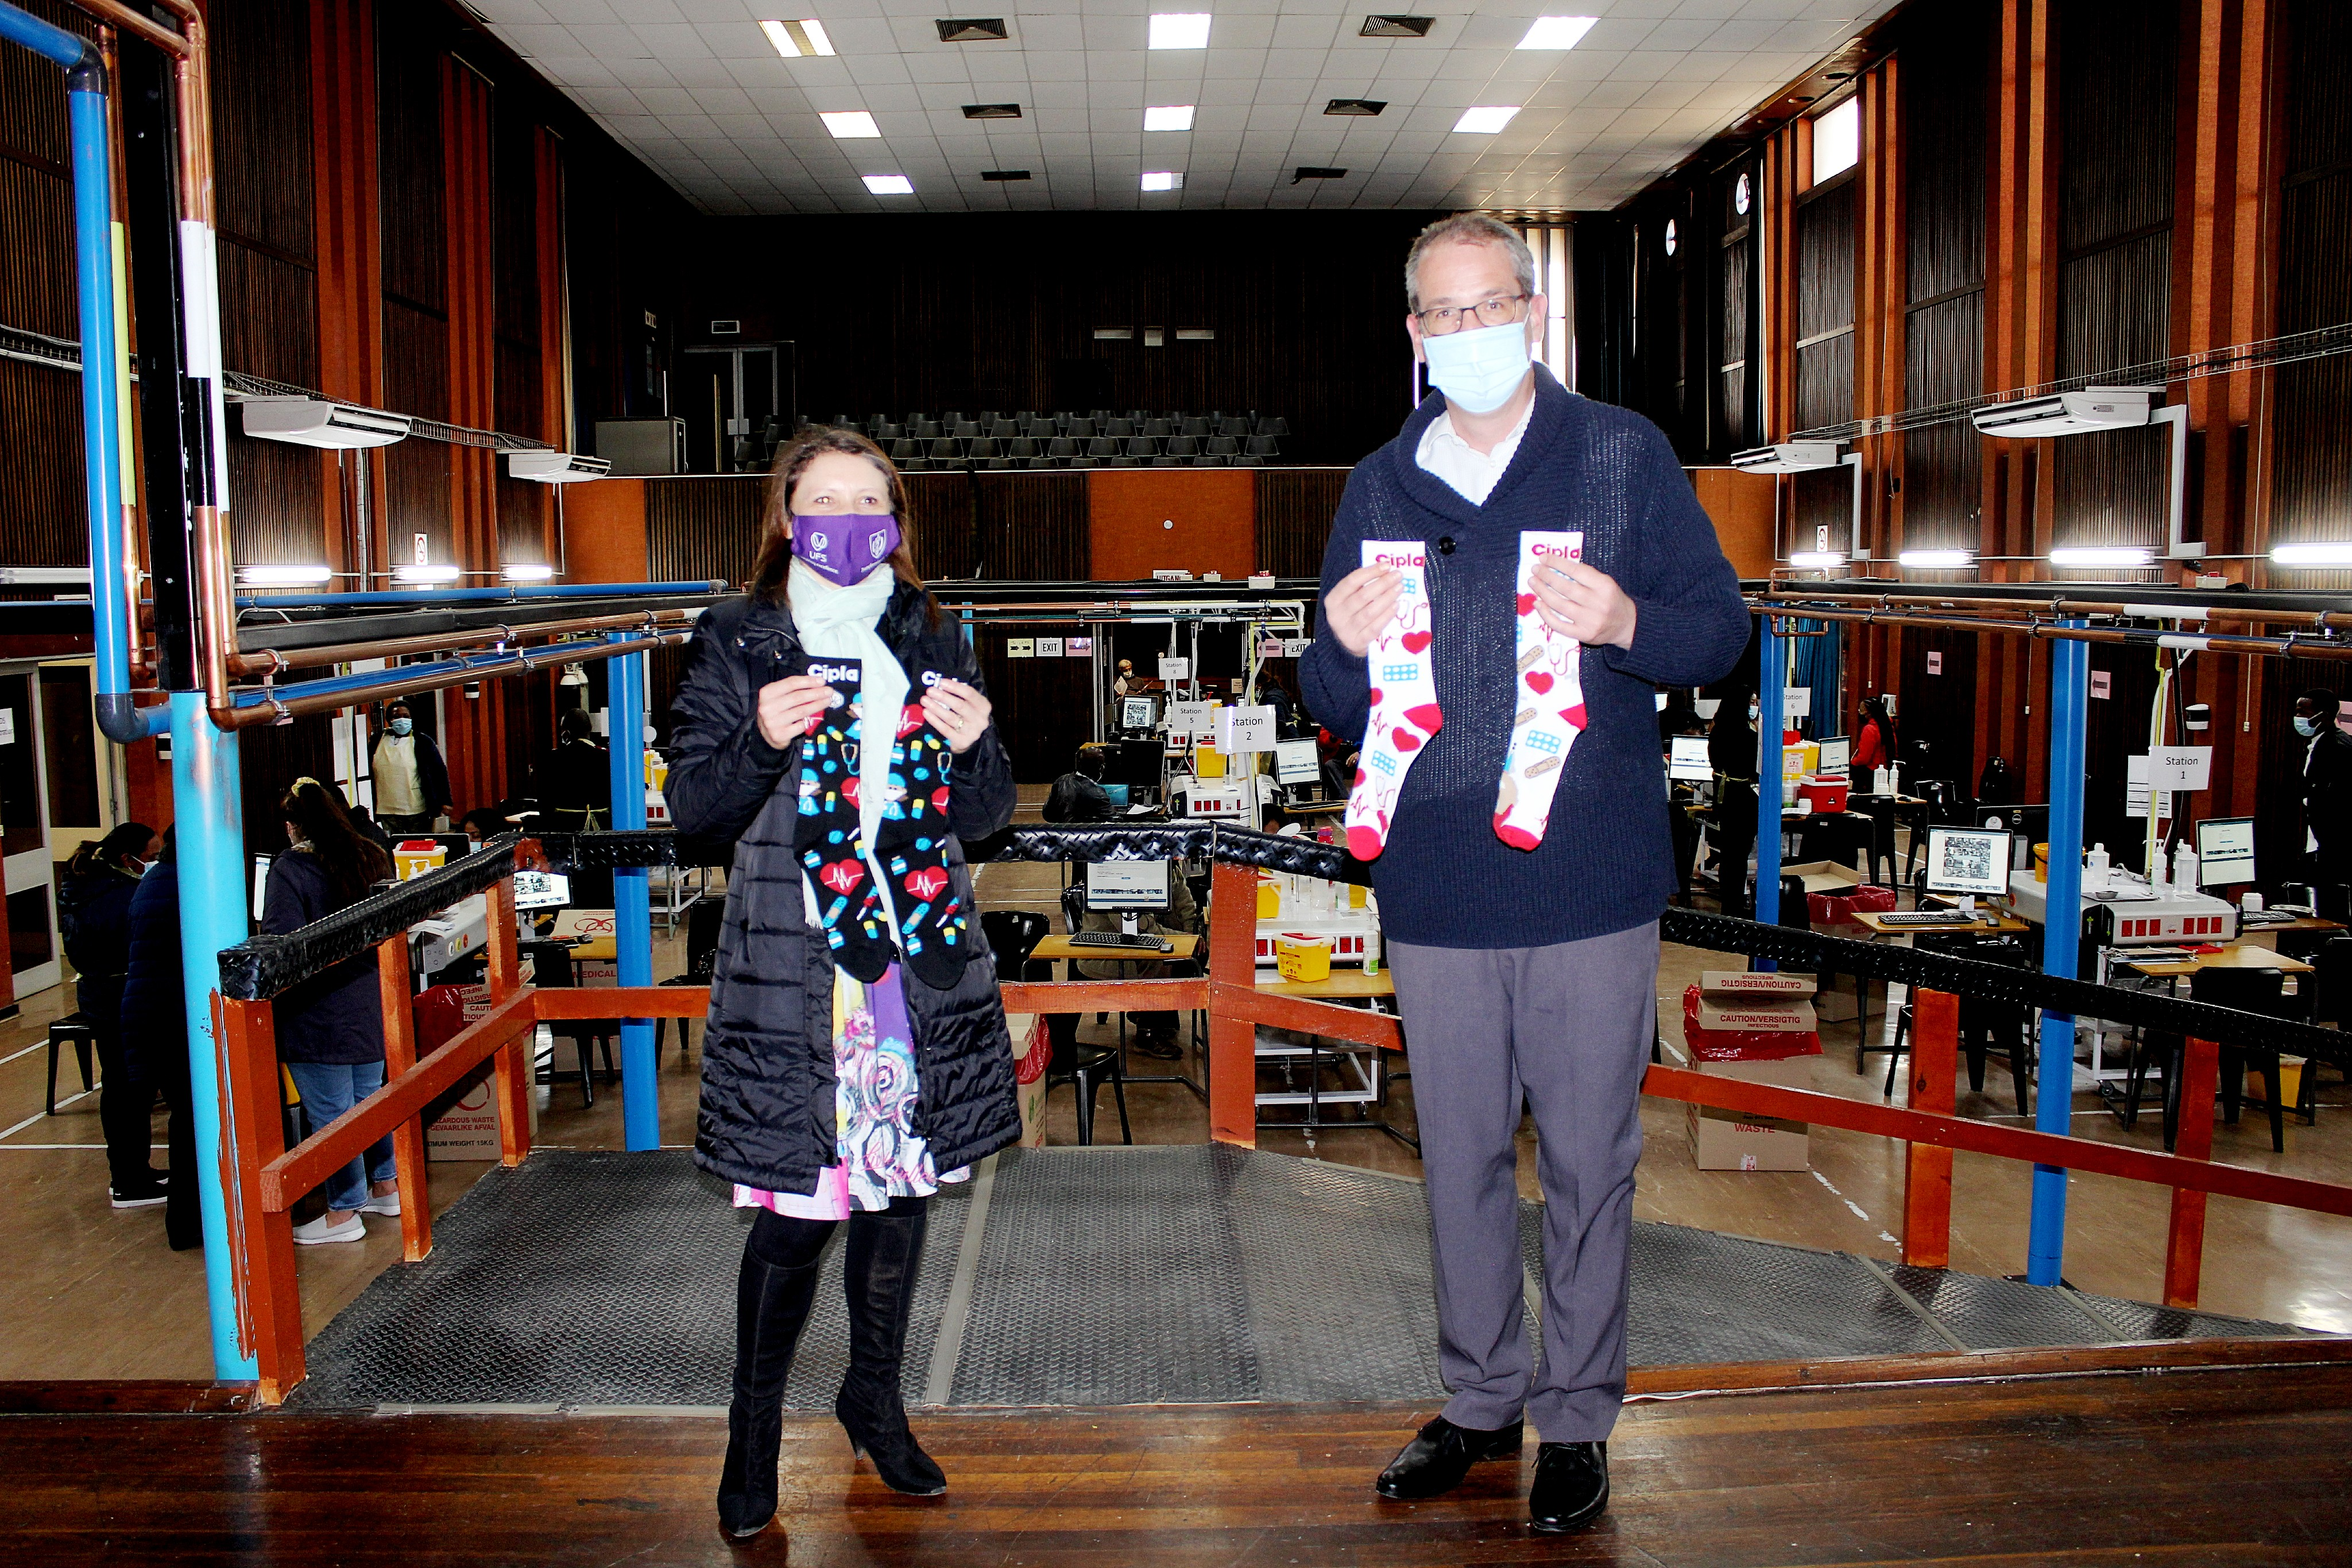 Dr Nicholas Pearce, Head of Surgery at the UFS – who is also heading the Universitas Hospital COVID-19 Task Team – receives a donation of crazy socks from Angela Vorster, Clinical Psychologist in the School of Clinical Medicine